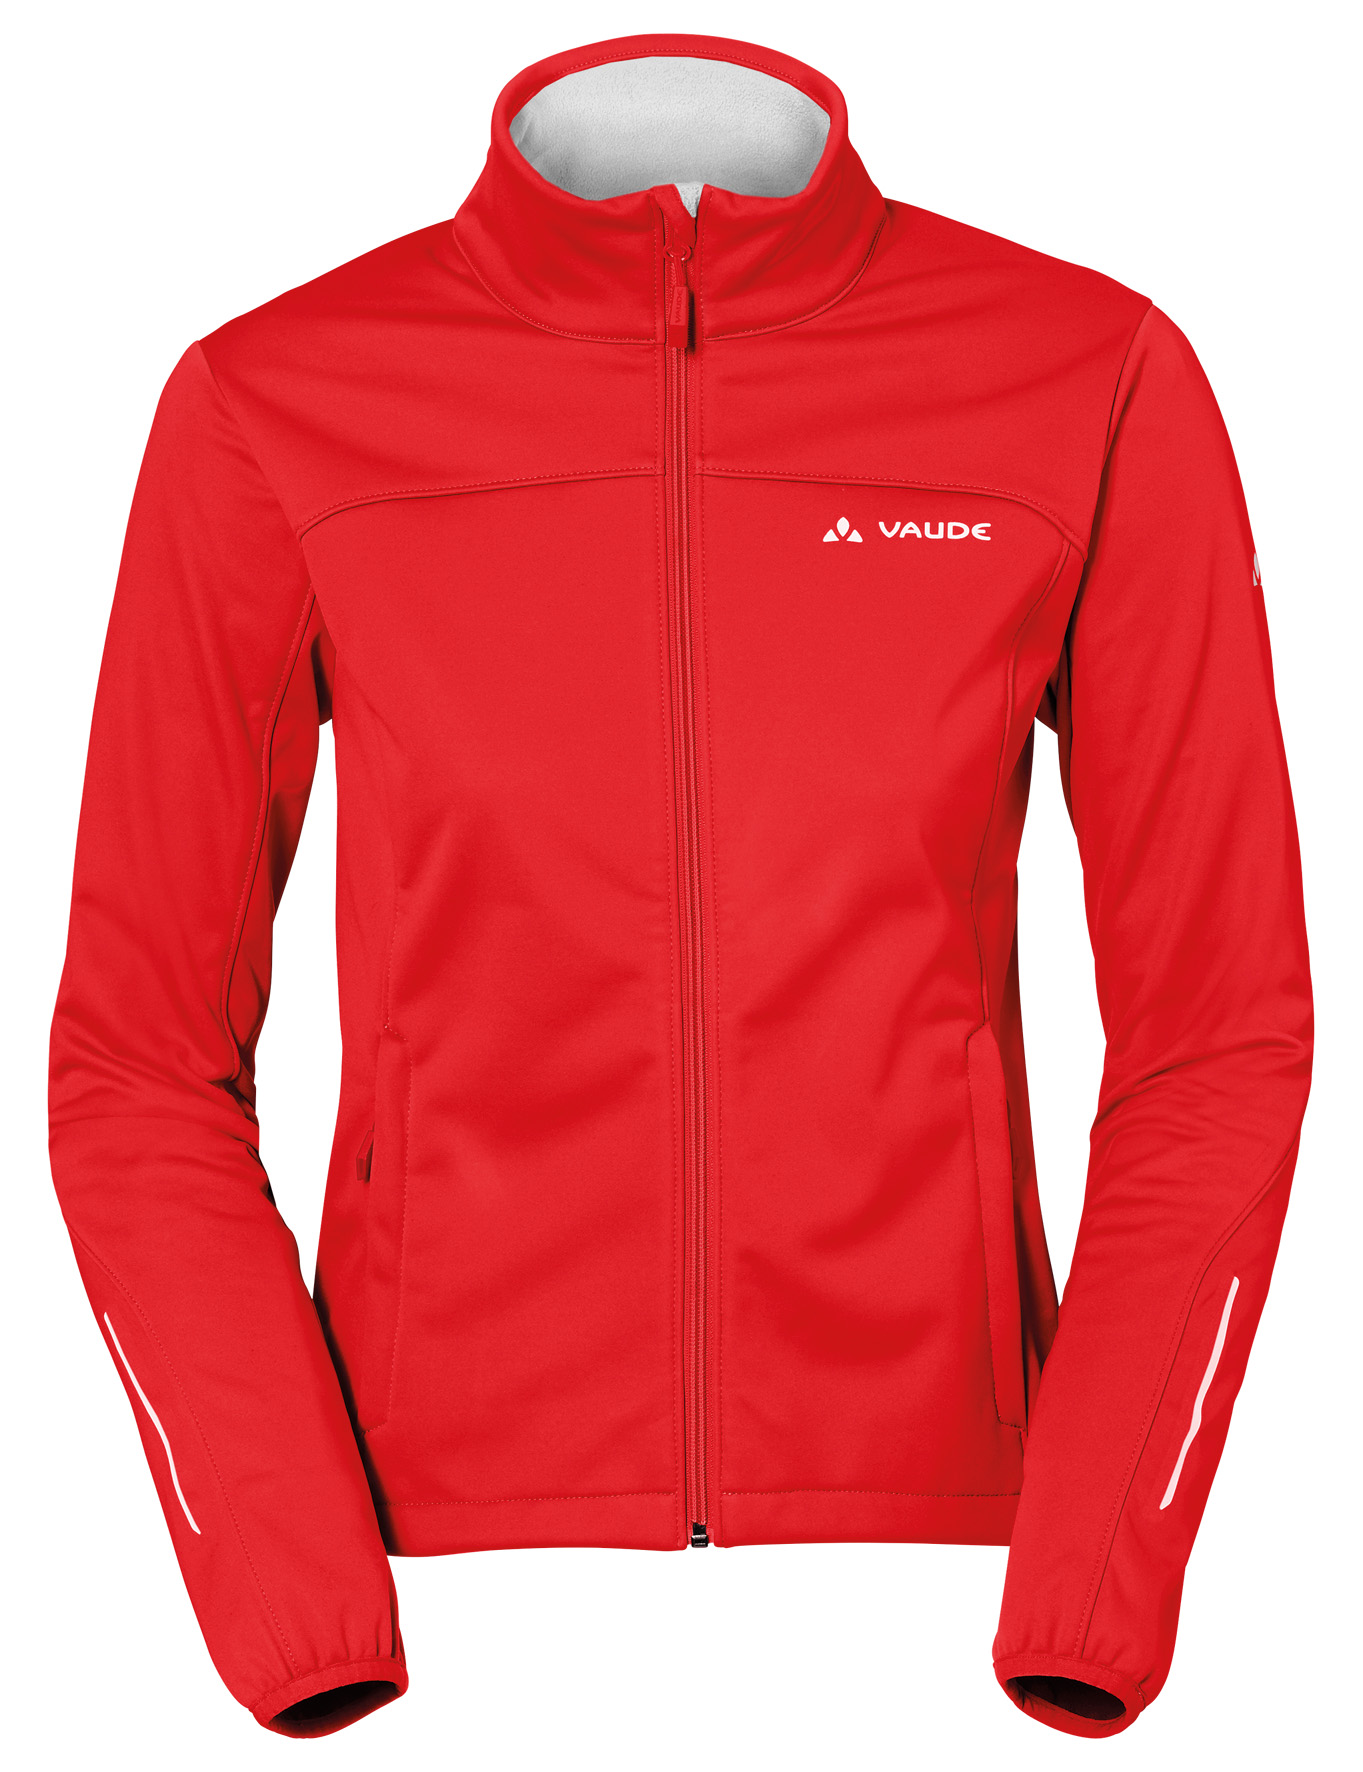 VAUDE Women´s Wintry Jacket III flame Größe 36 - schneider-sports